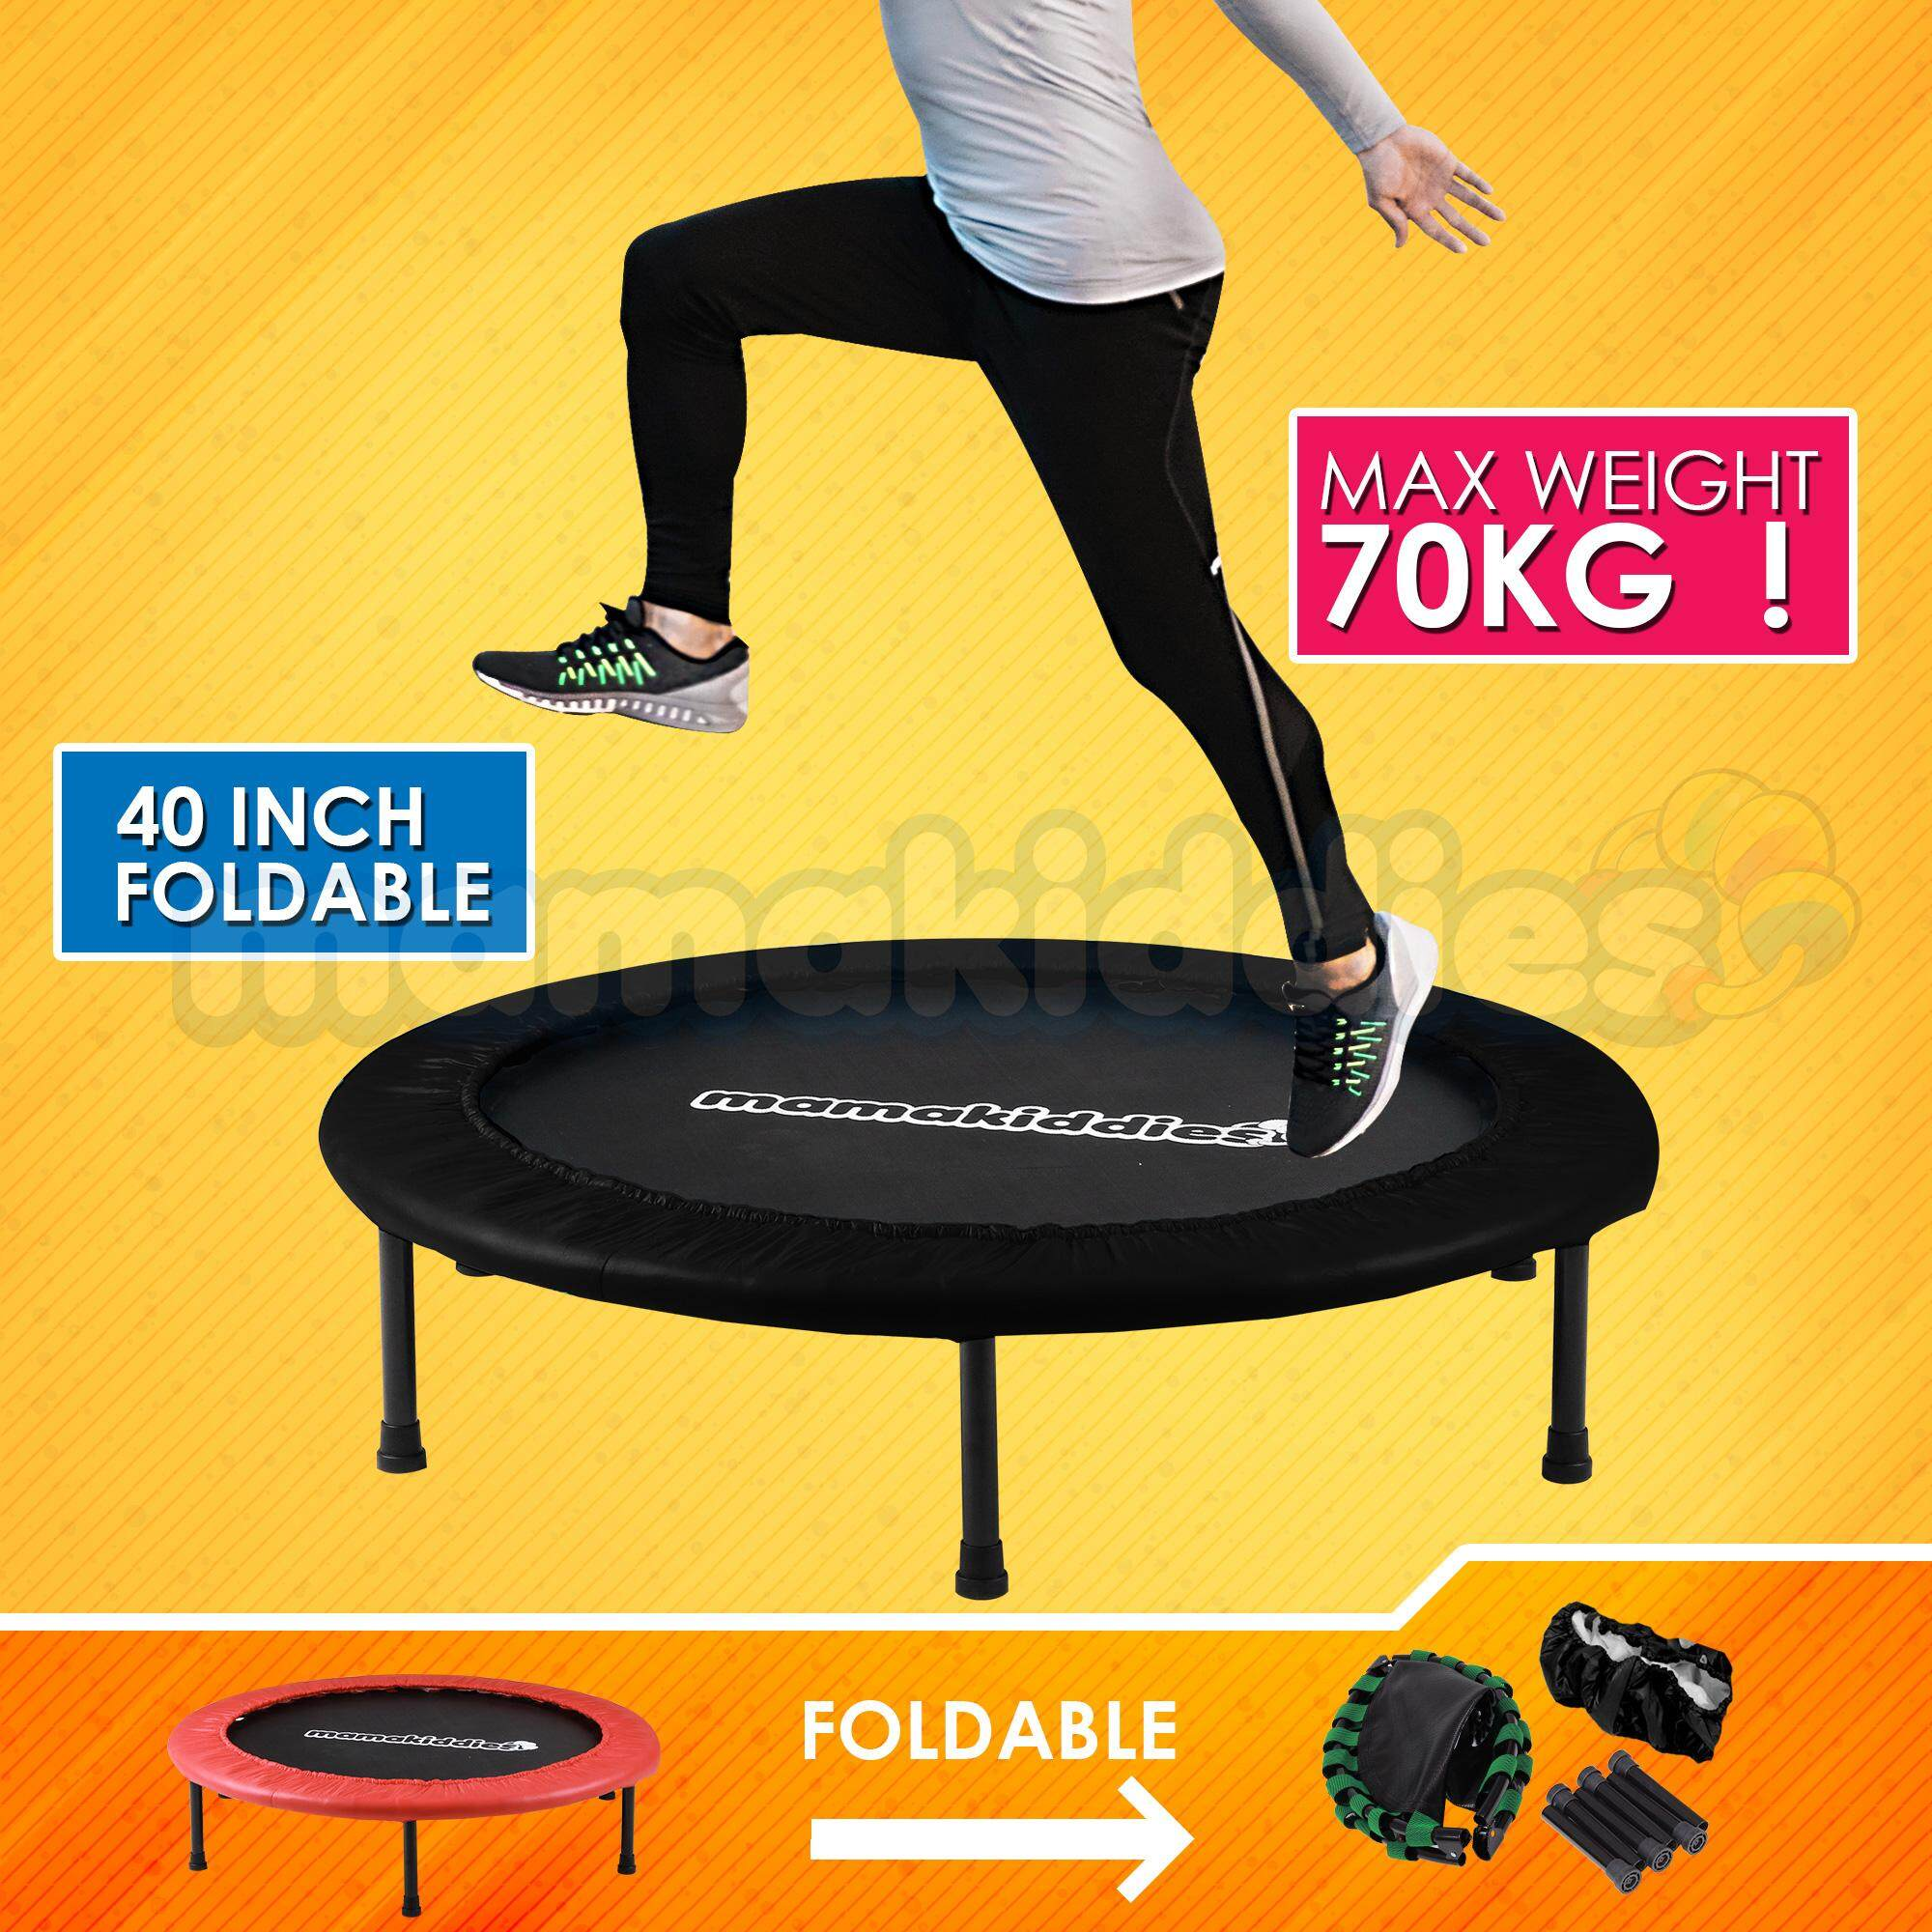 Mamakiddies 40 Inches 4 Folds Fold-Able Premium Bungee Trampoline Kids And Adult Fitness Slimming, Anti Stress, Jumping Bouncer, Physical Therapy For Autism & Exercise By Mamakiddies.